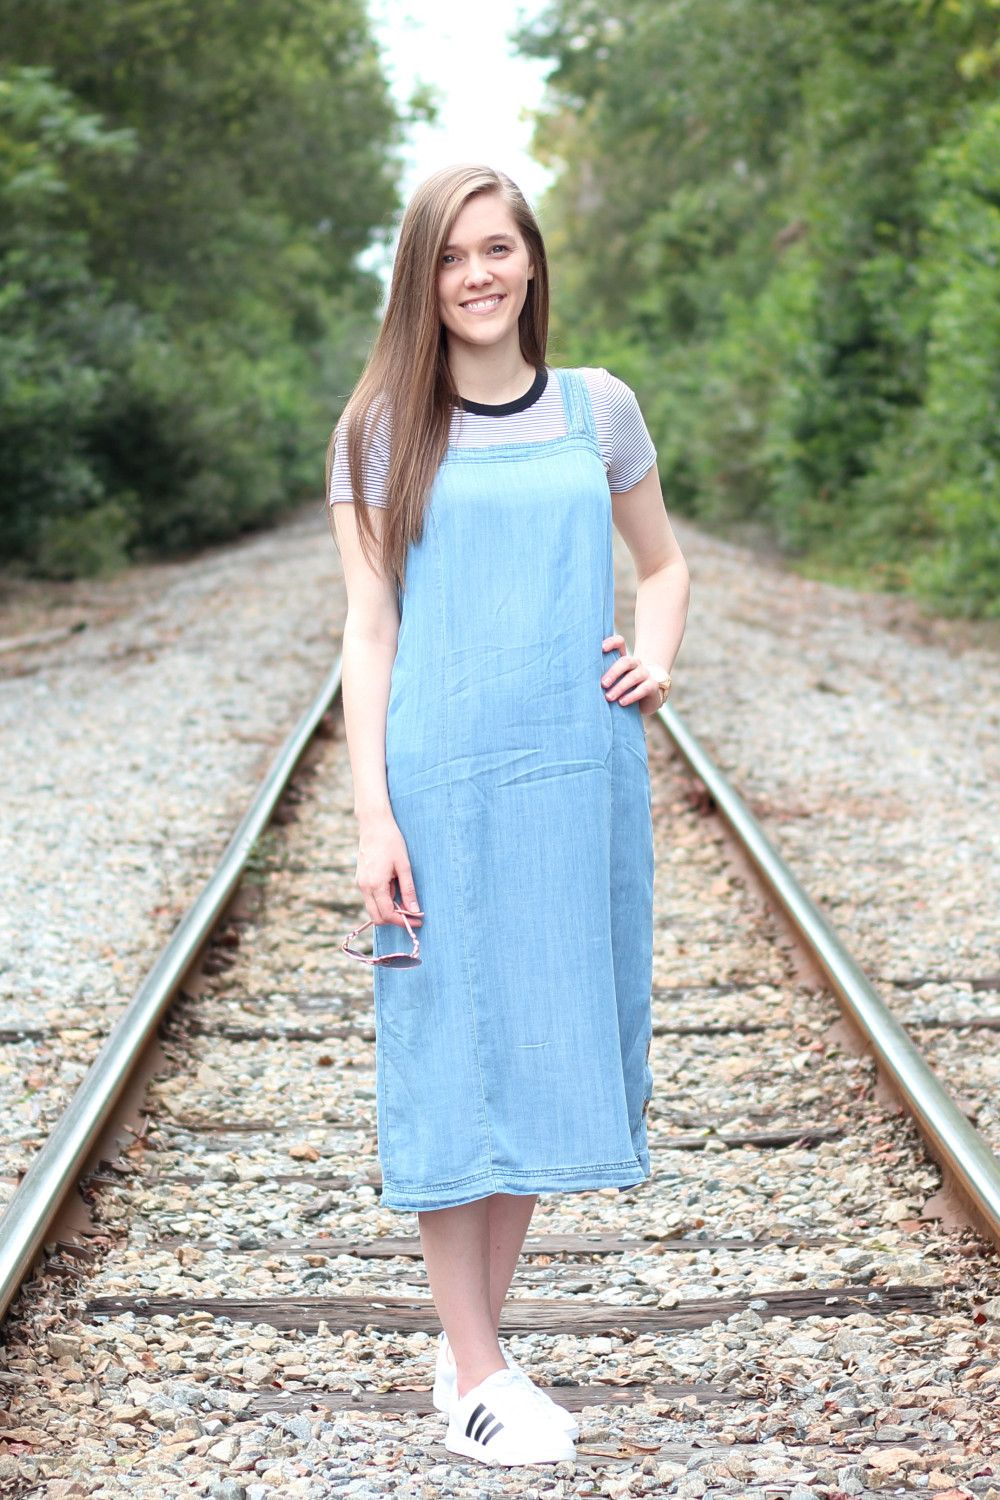 b7f2c62740e Modest Casual Outfit Idea for Church  Denim Chambray Dress  Striped  Tee  Adidas White Sneakers  Summer Fall Style  Inspiration  Cute  Simple  Comfy  Pretty   ...